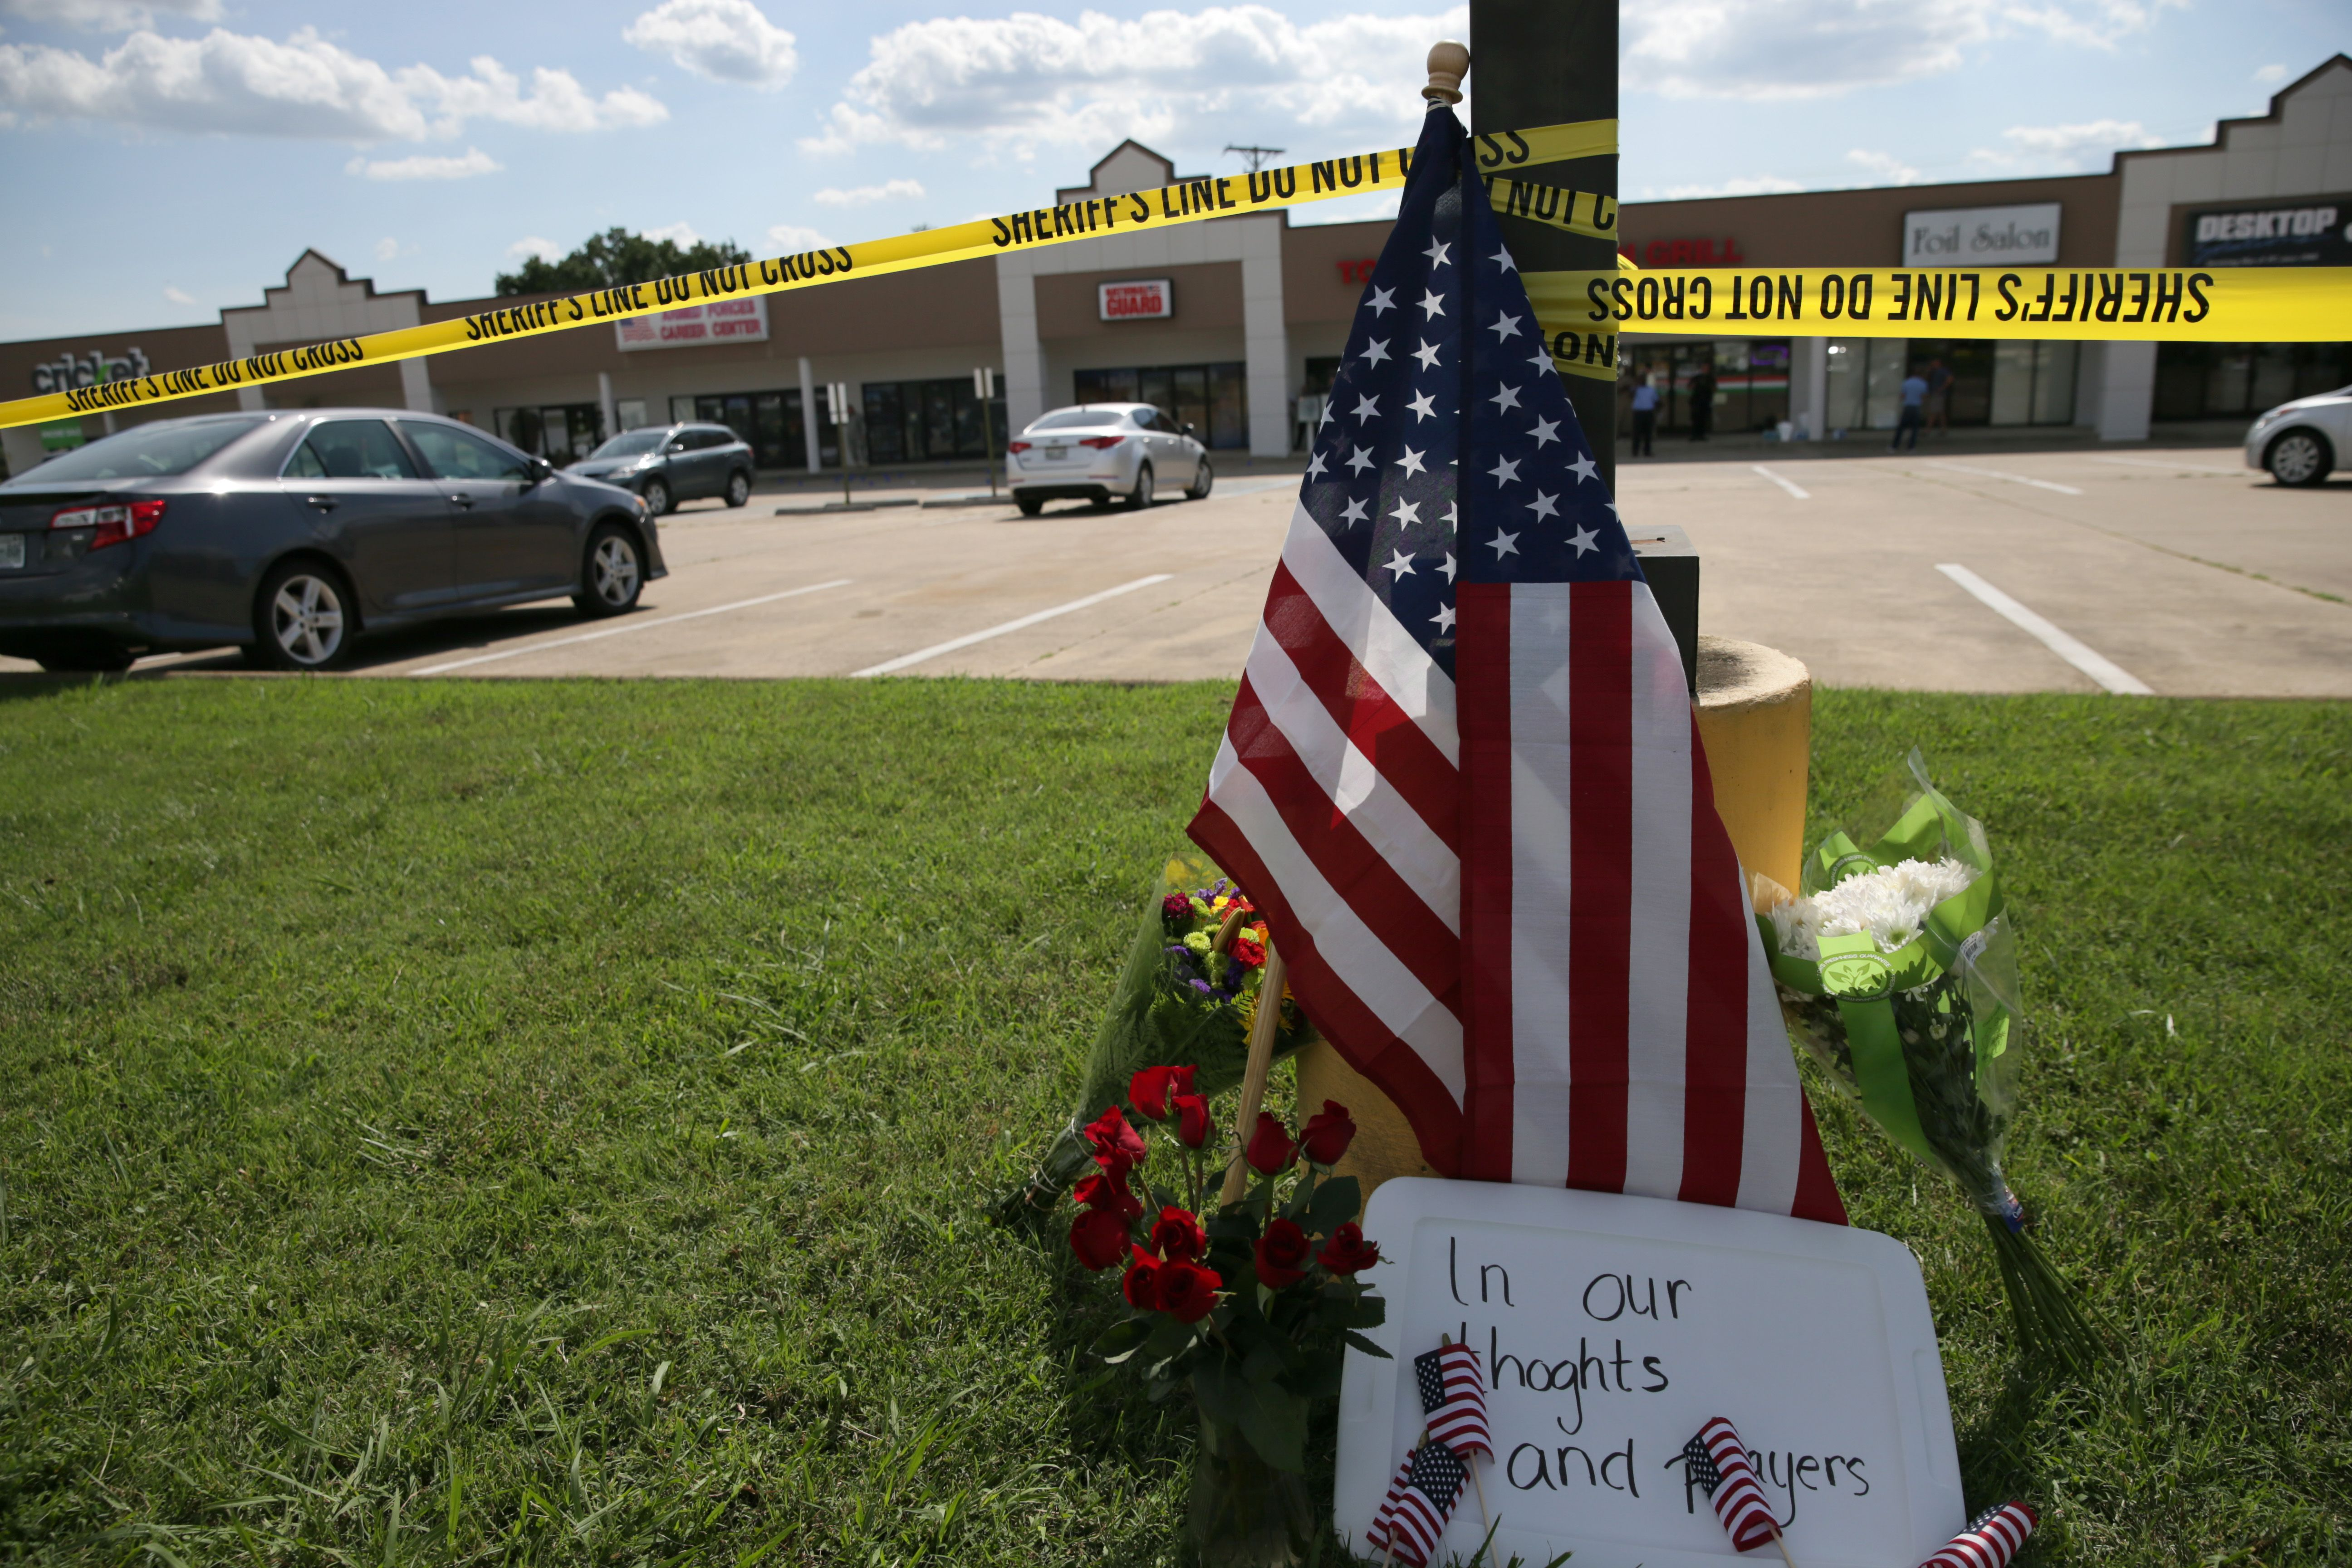 CHATTANOOGA, Tenn. (July 16, 2015) Police tape and a makeshift memorial frame the scene at an Armed Forces Career Center, where earlier in the day an active shooter opened fire, injuring one U.S. Marine. The gunman later moved to the nearby Navy Operational Support Center (NOSC) firing multiple shots, killing four Marines and injuring one Sailor. (U.S. Navy photo by Damon J. Moritz/Released)